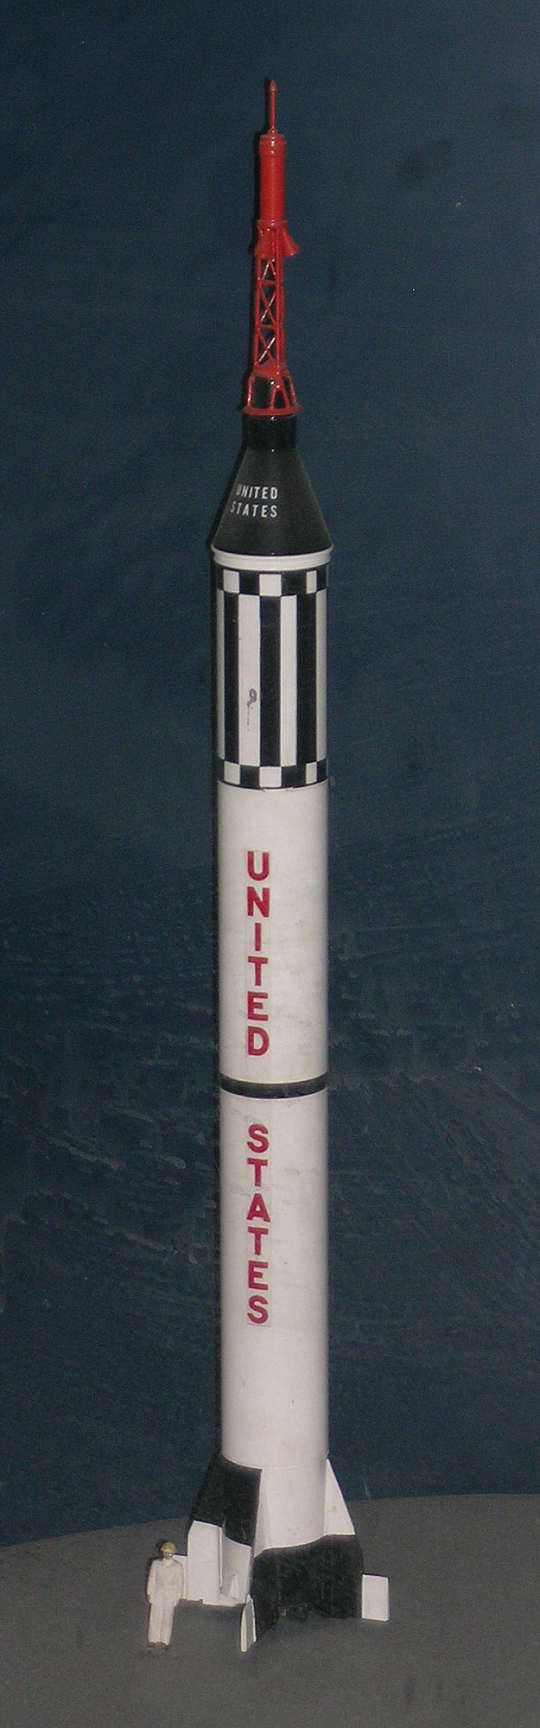 Model, Rocket, Mercury Redstone, 1:48